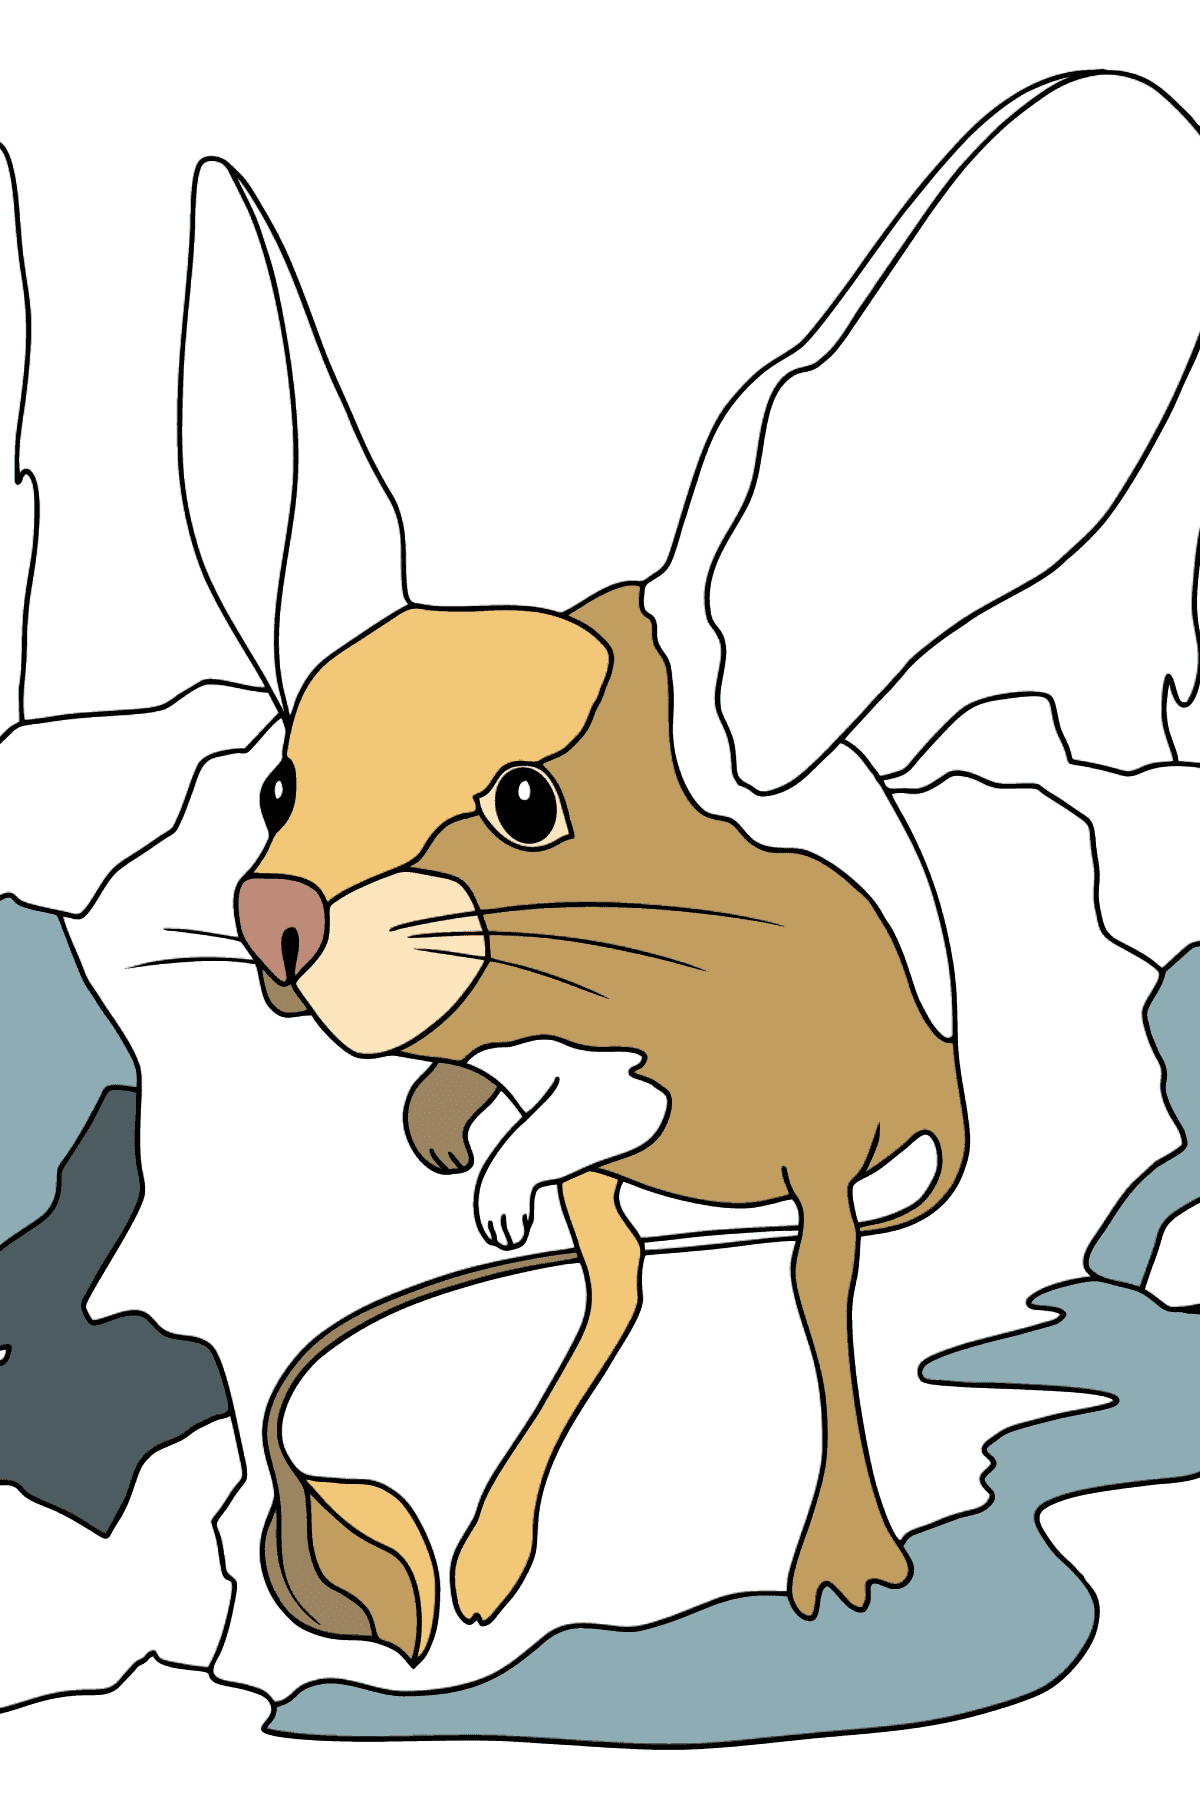 A Jerboa is Inspecting the Area Coloring Page - Coloring Pages for Kids